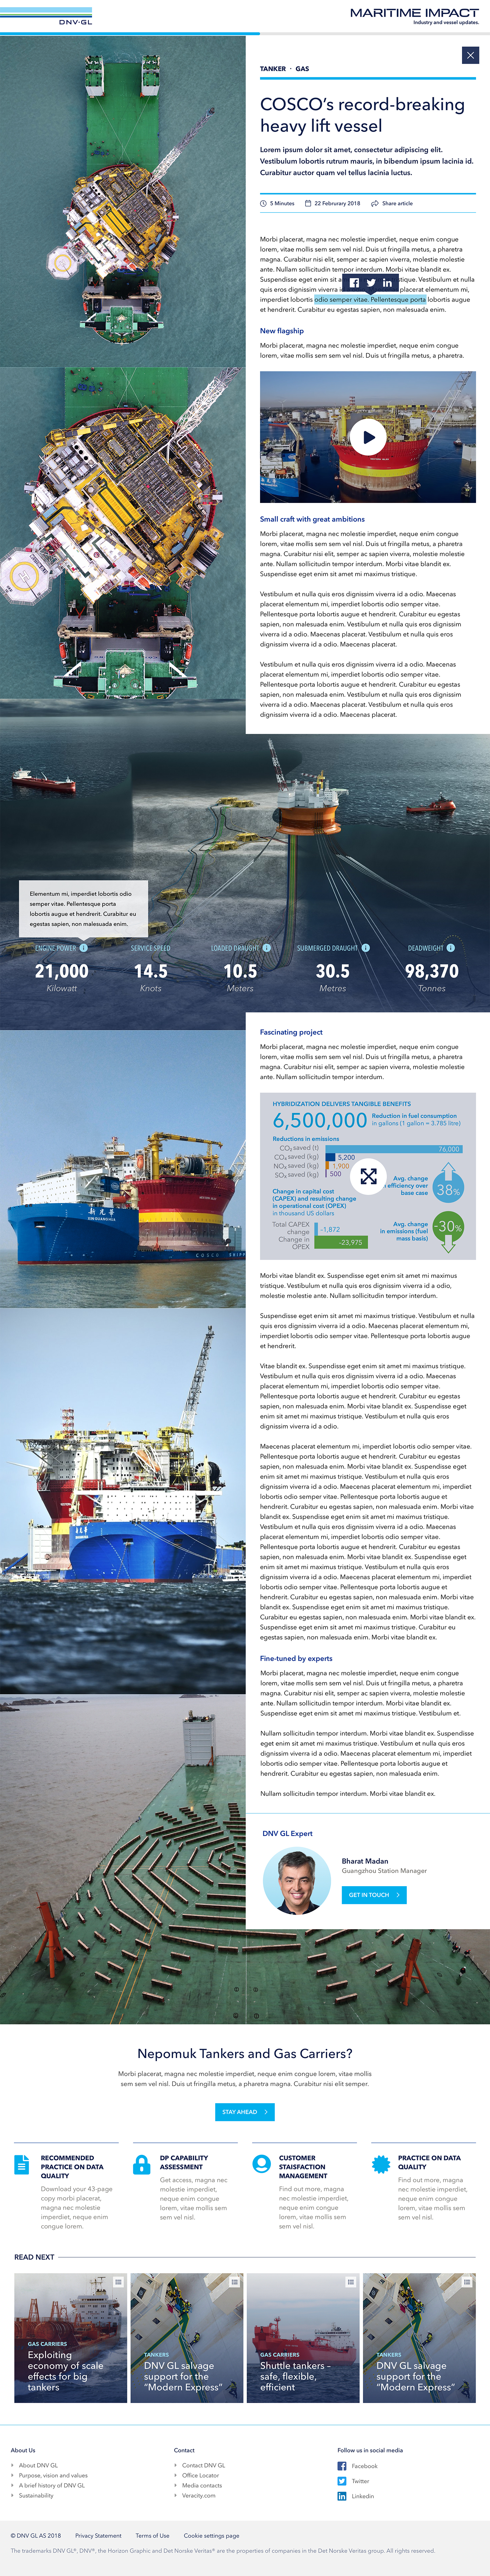 dnv-gl_maritime-impact_article